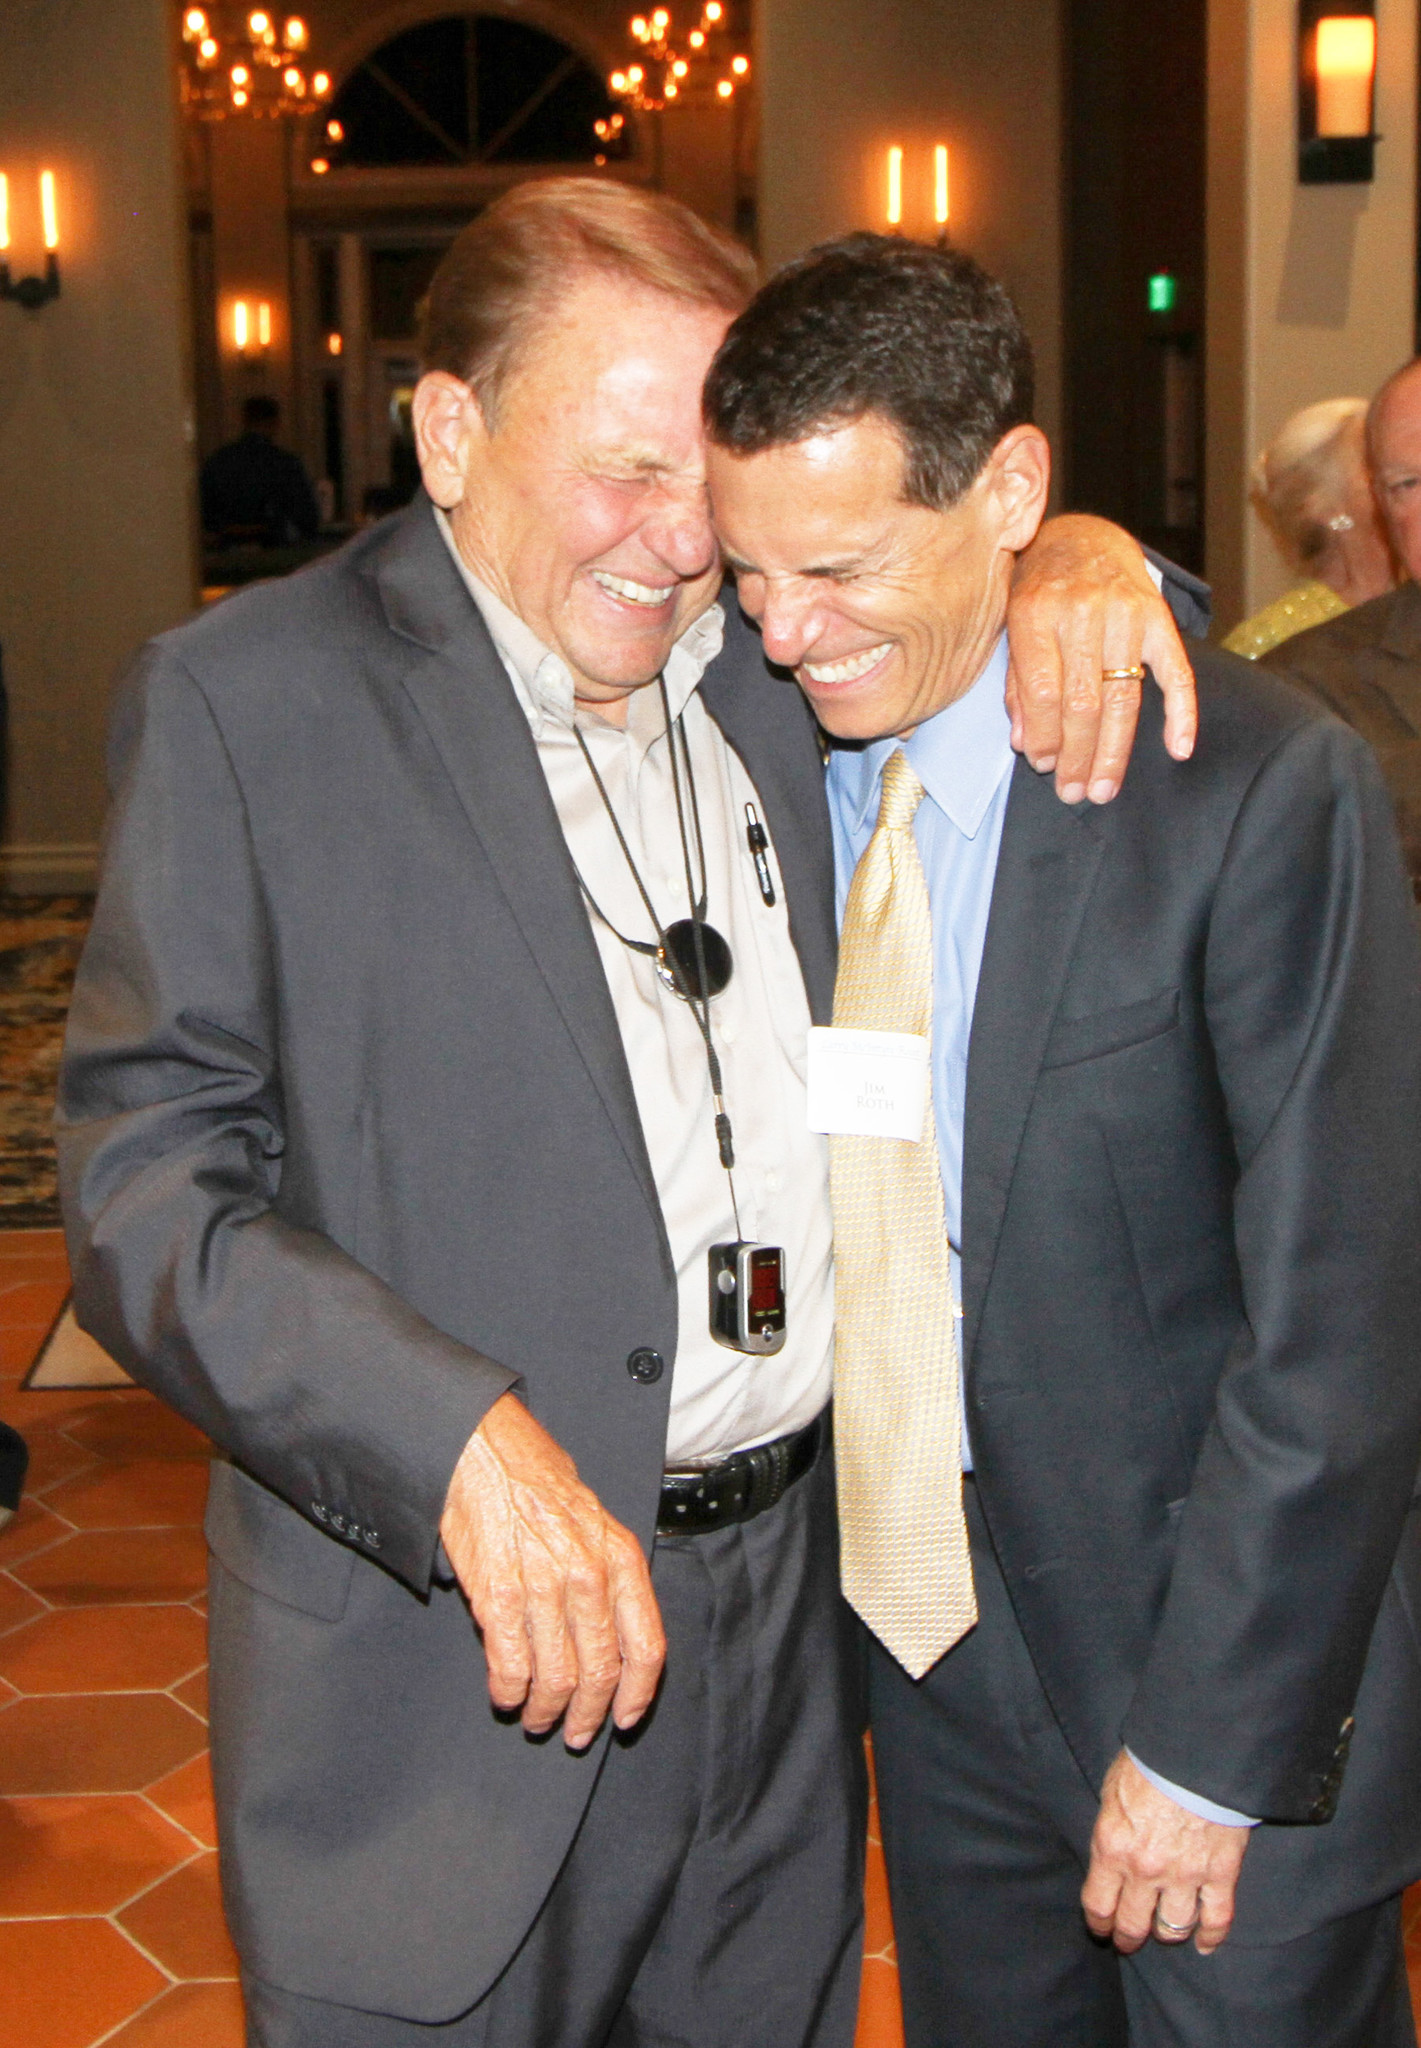 Larry McIntyre and Jim Roth sharing a laugh after the roast, at which Roth was the master of ceremonies.